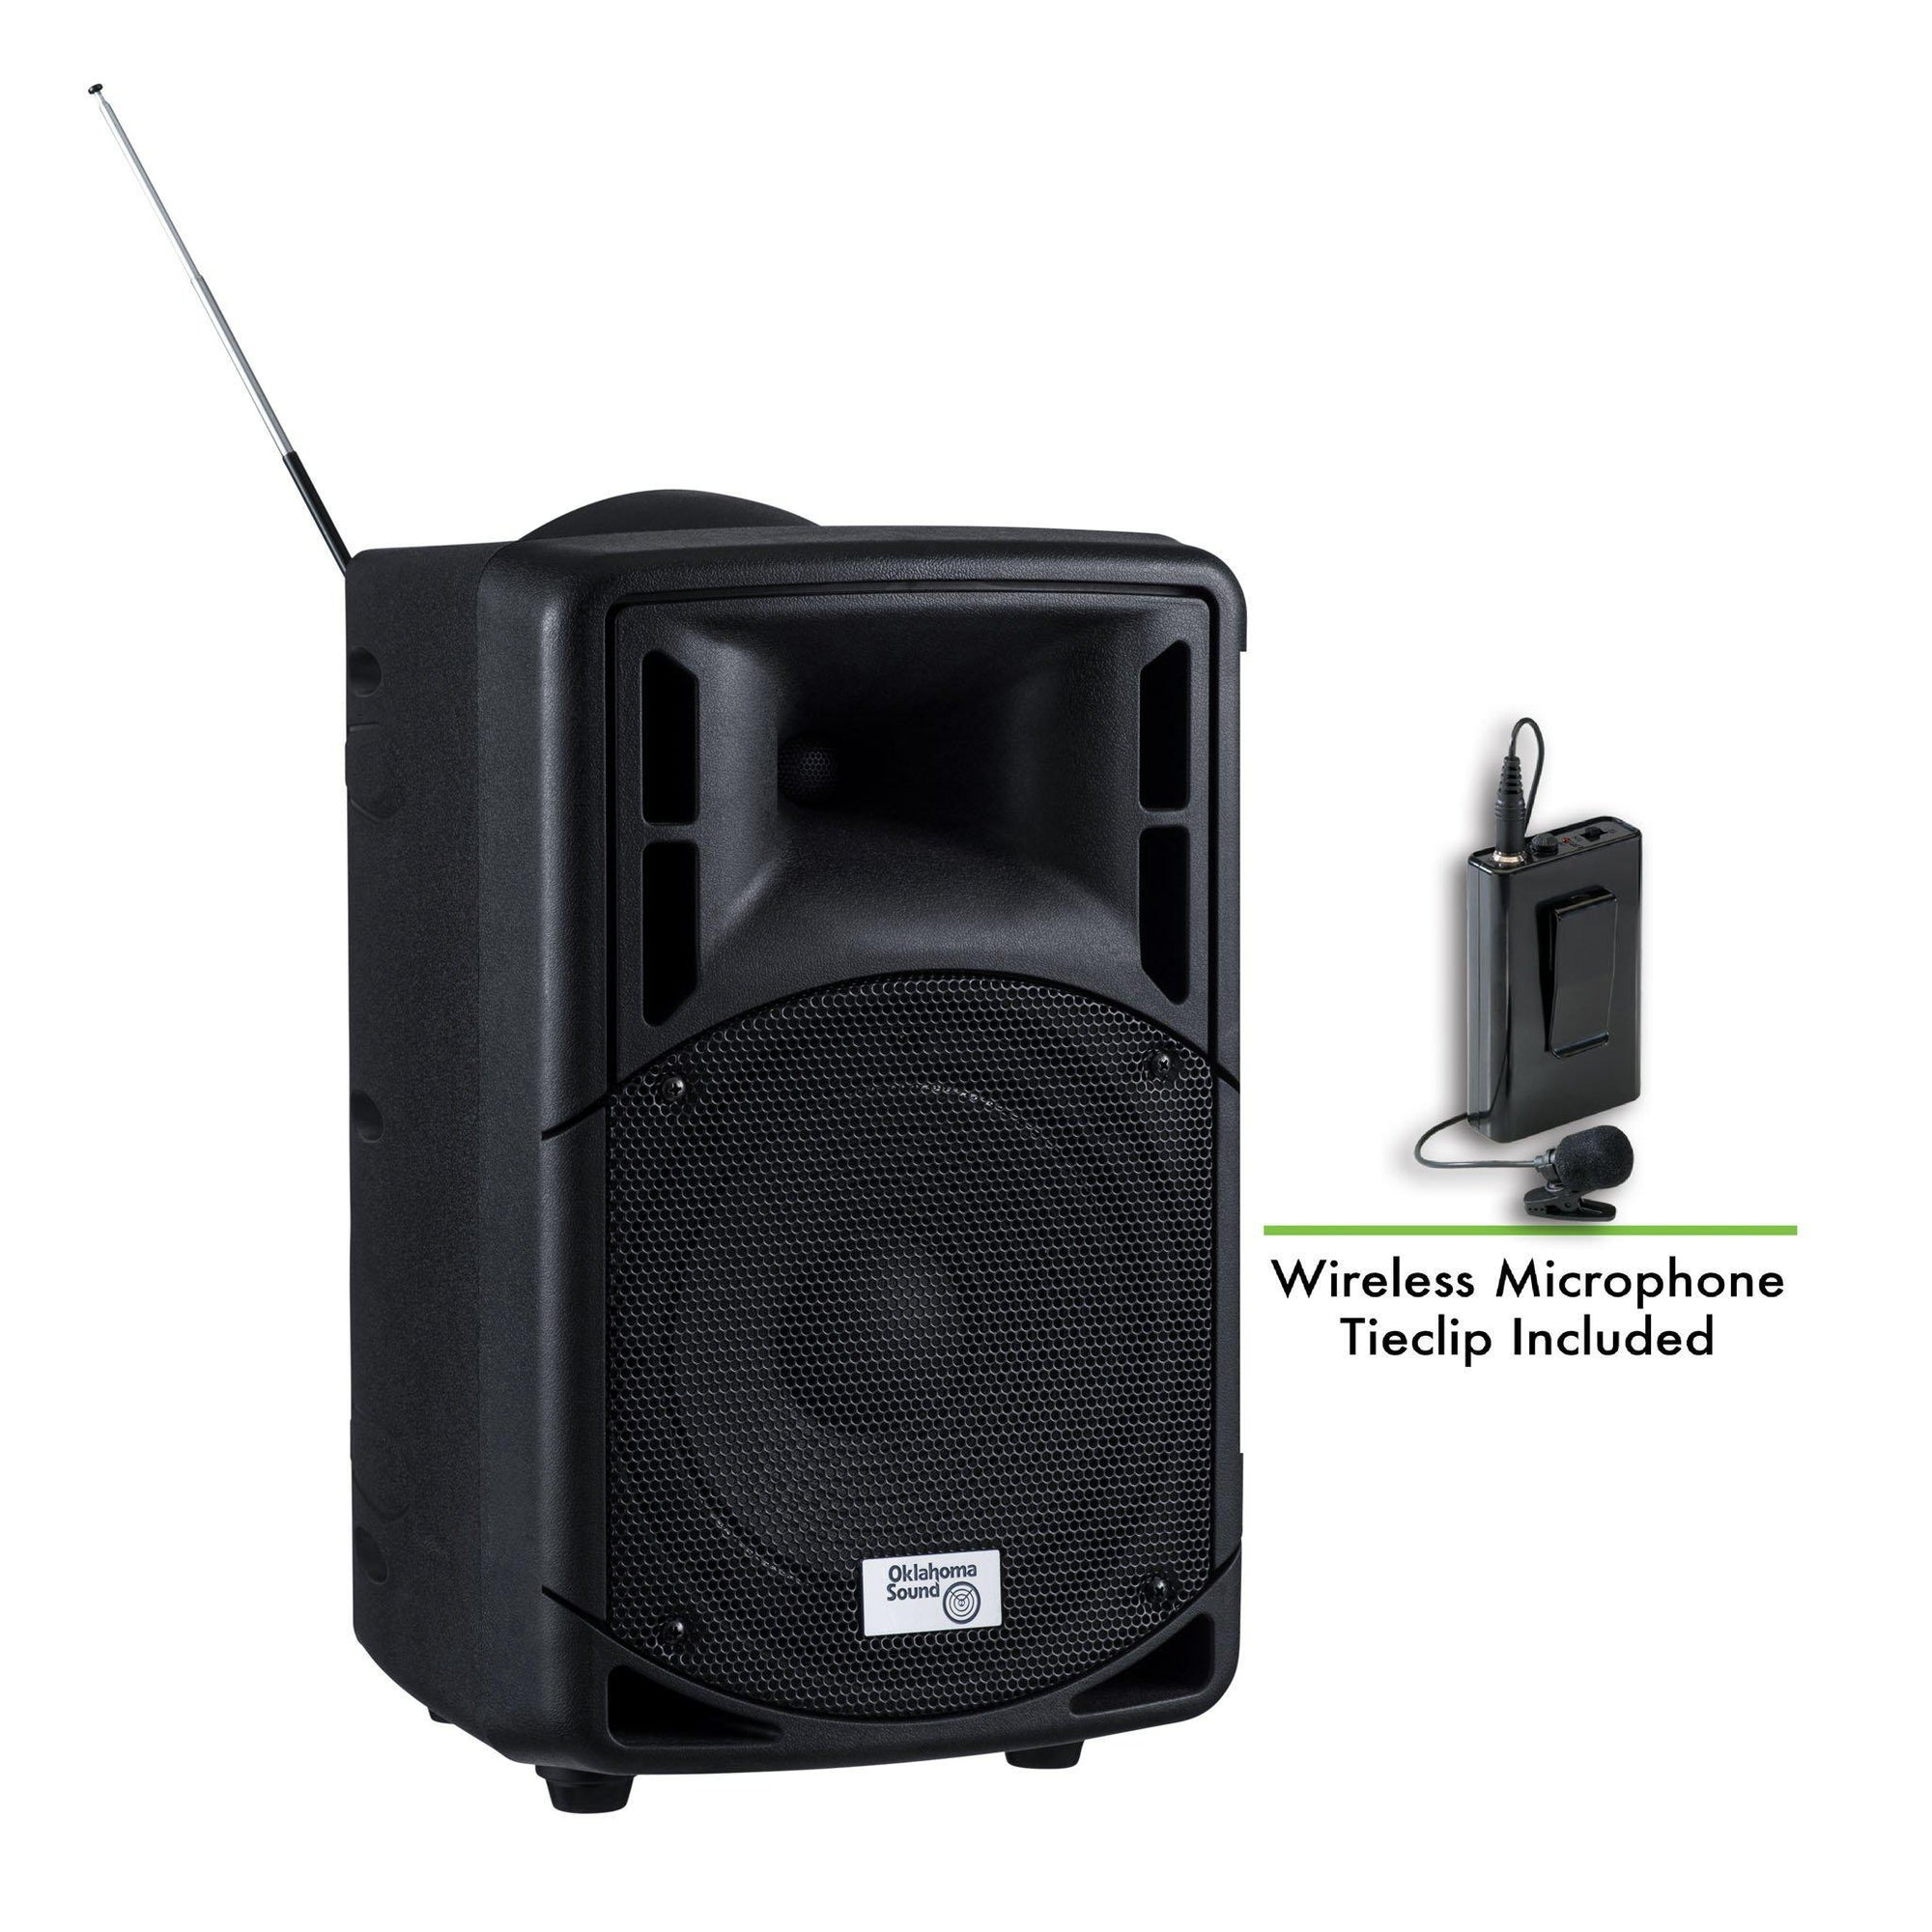 Oklahoma Sound® 40 Watt Wireless PA System w/ Wireless Tie Clip Mic-Audio-Visual/Presentation-